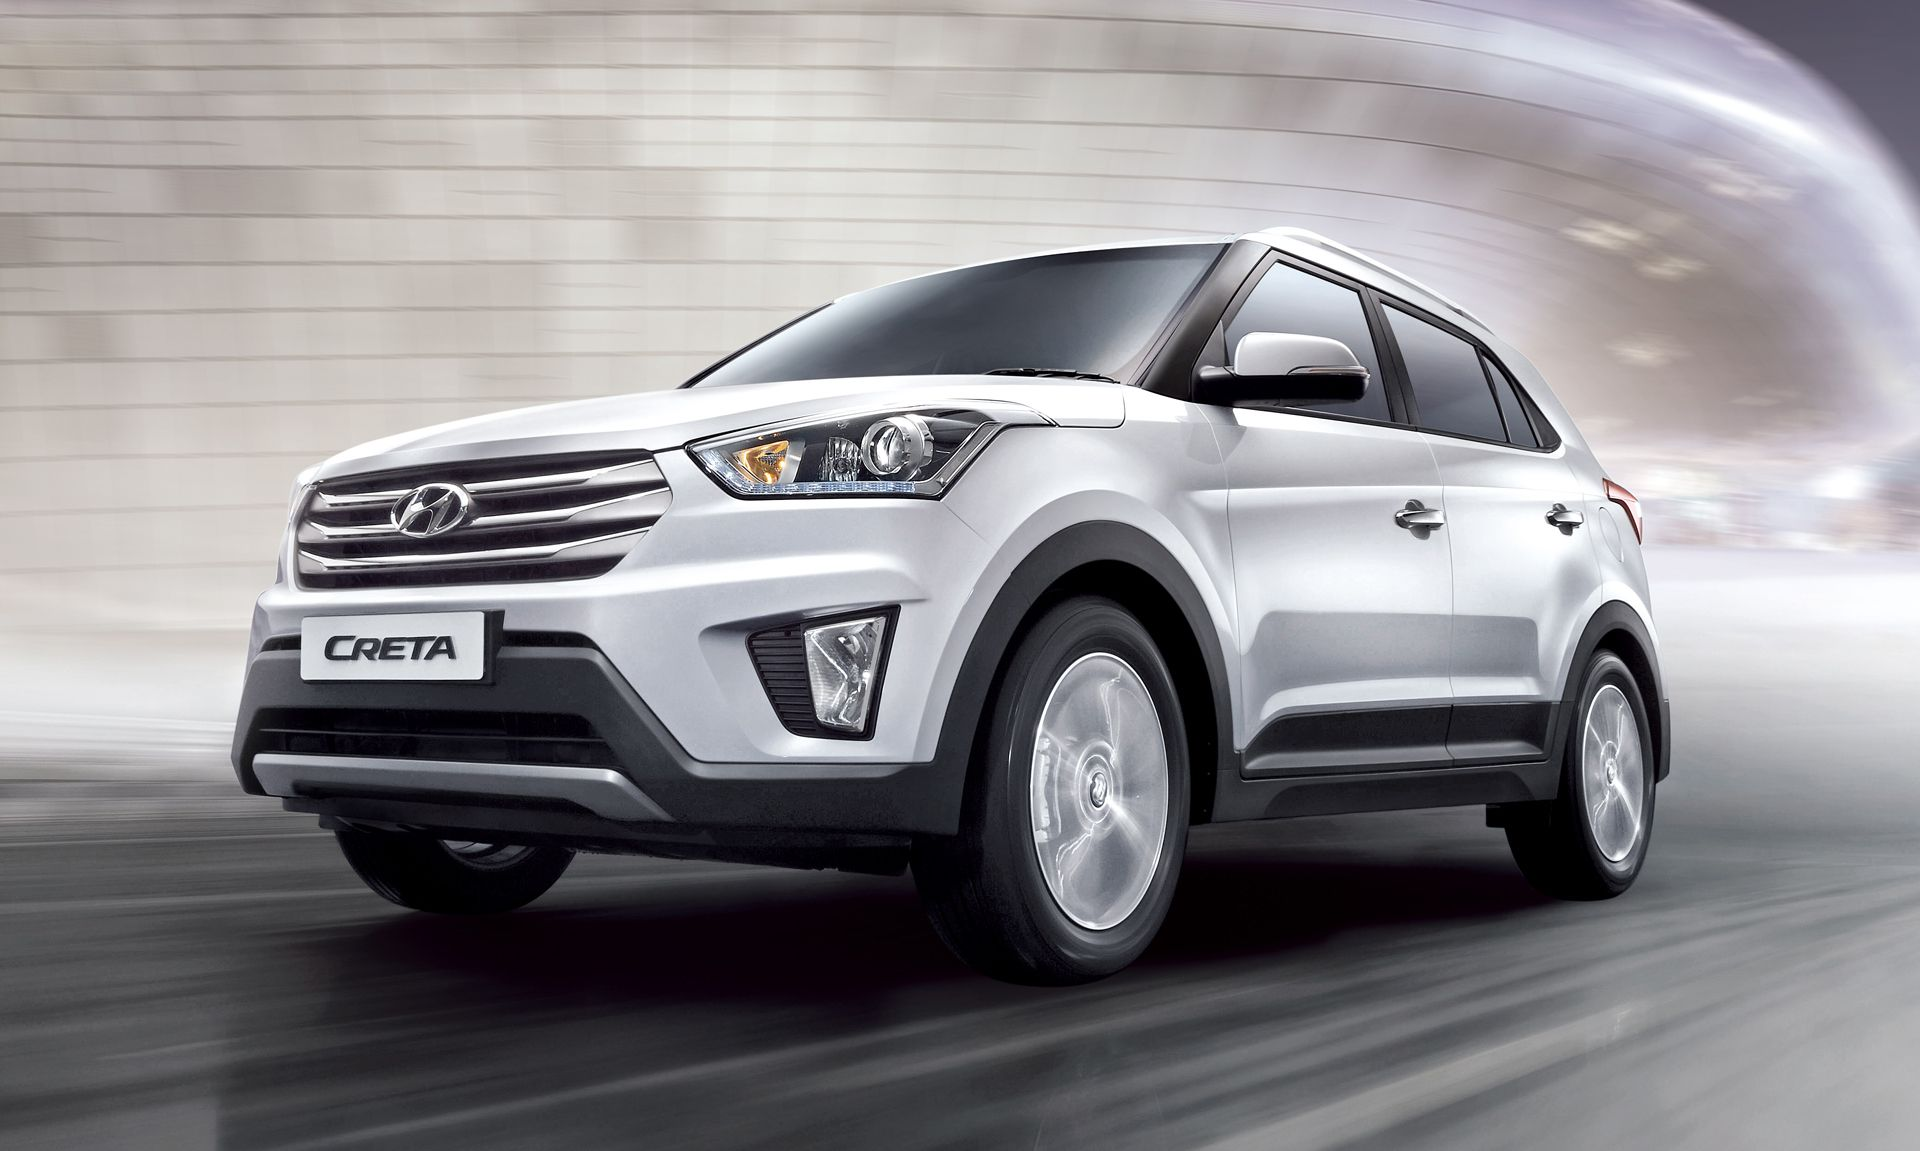 The Ergonomic Design Of The Hyuandai Creta Is All About Enhancing Your Driving Experience Comfortandstyle Best Luxury Cars Luxury Cars Hyundai Cars